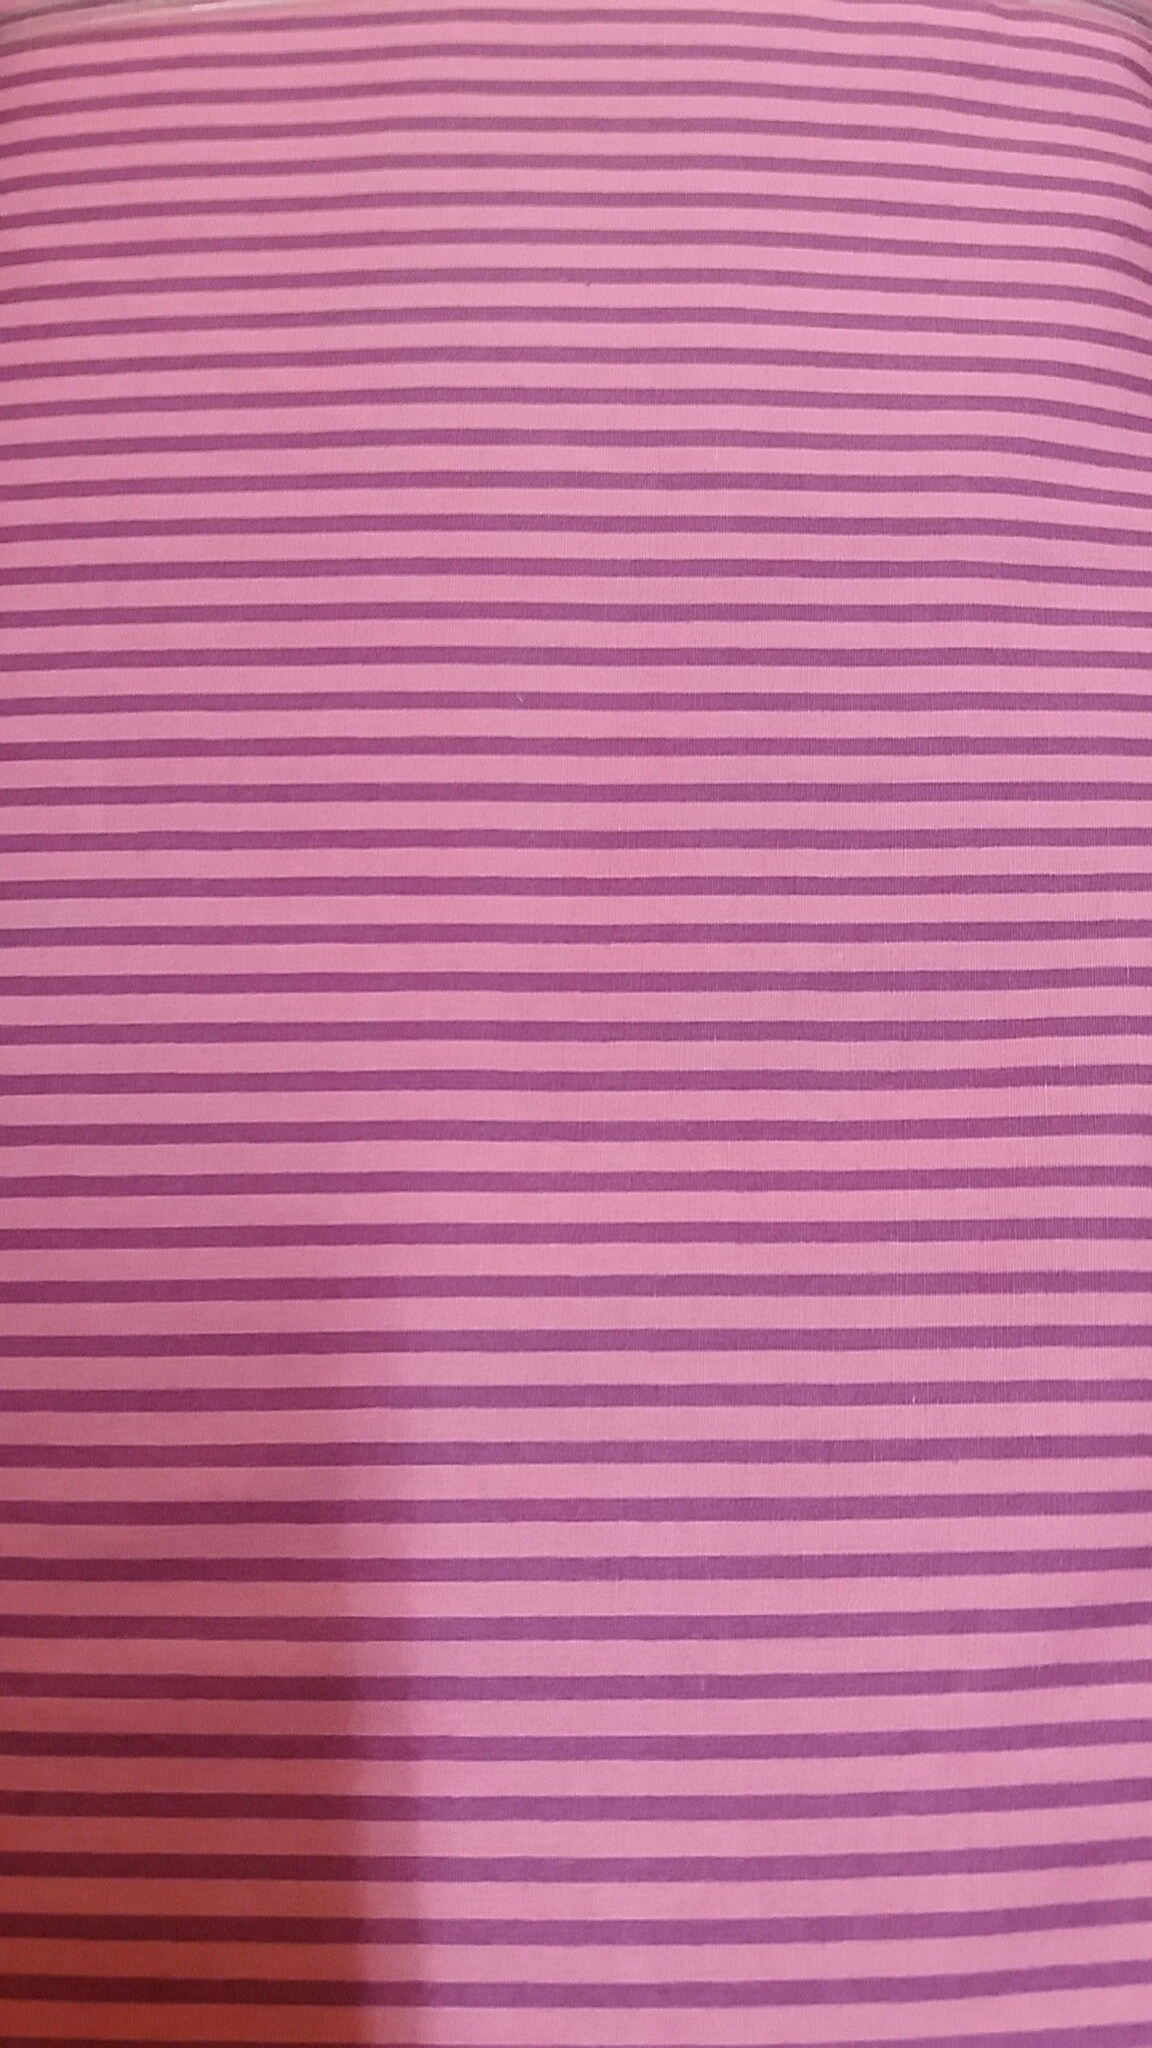 Stripes 3mm wine-oldpink